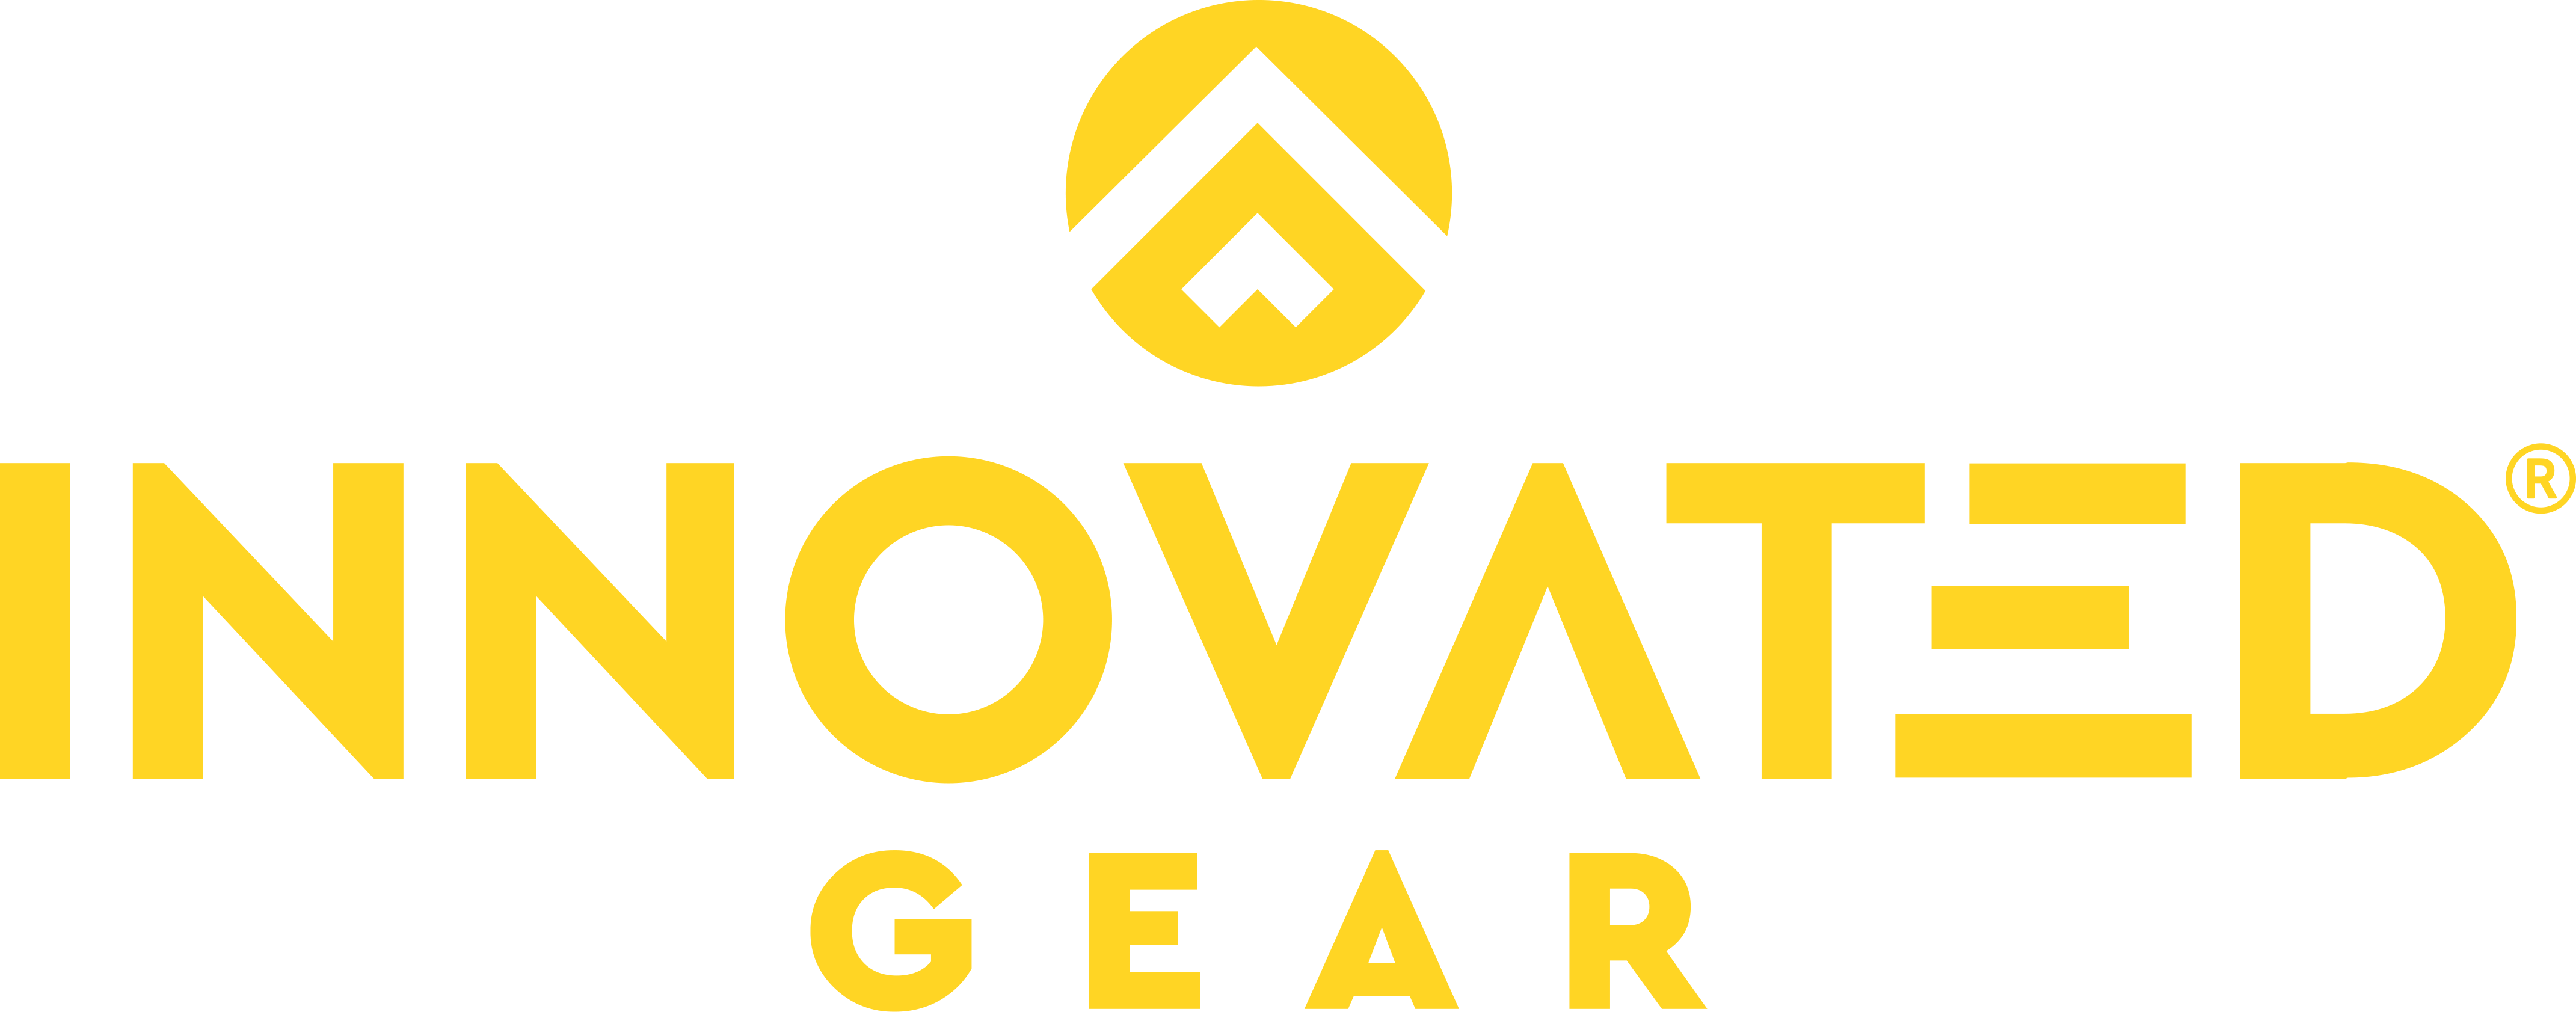 Innovated Gear